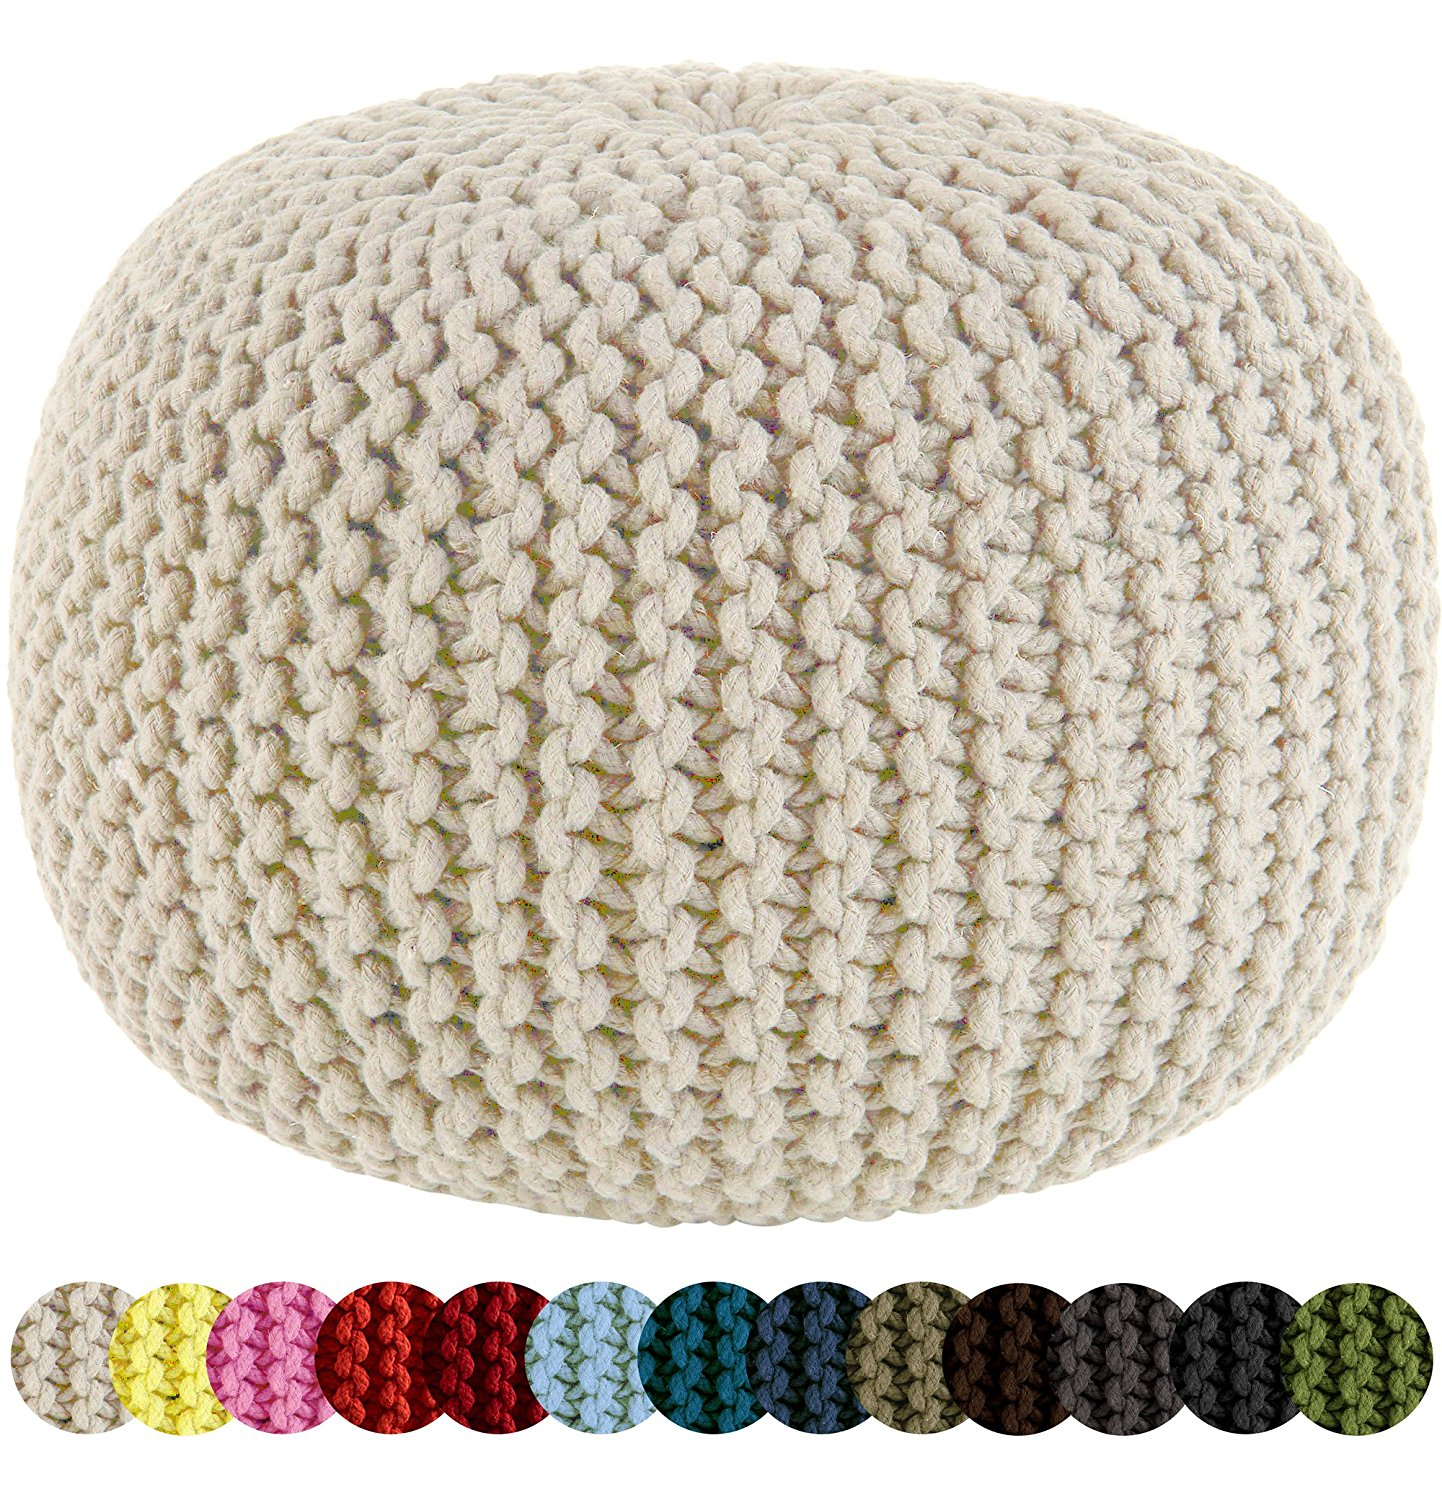 Cotton Craft Hand Knitted Ottoman